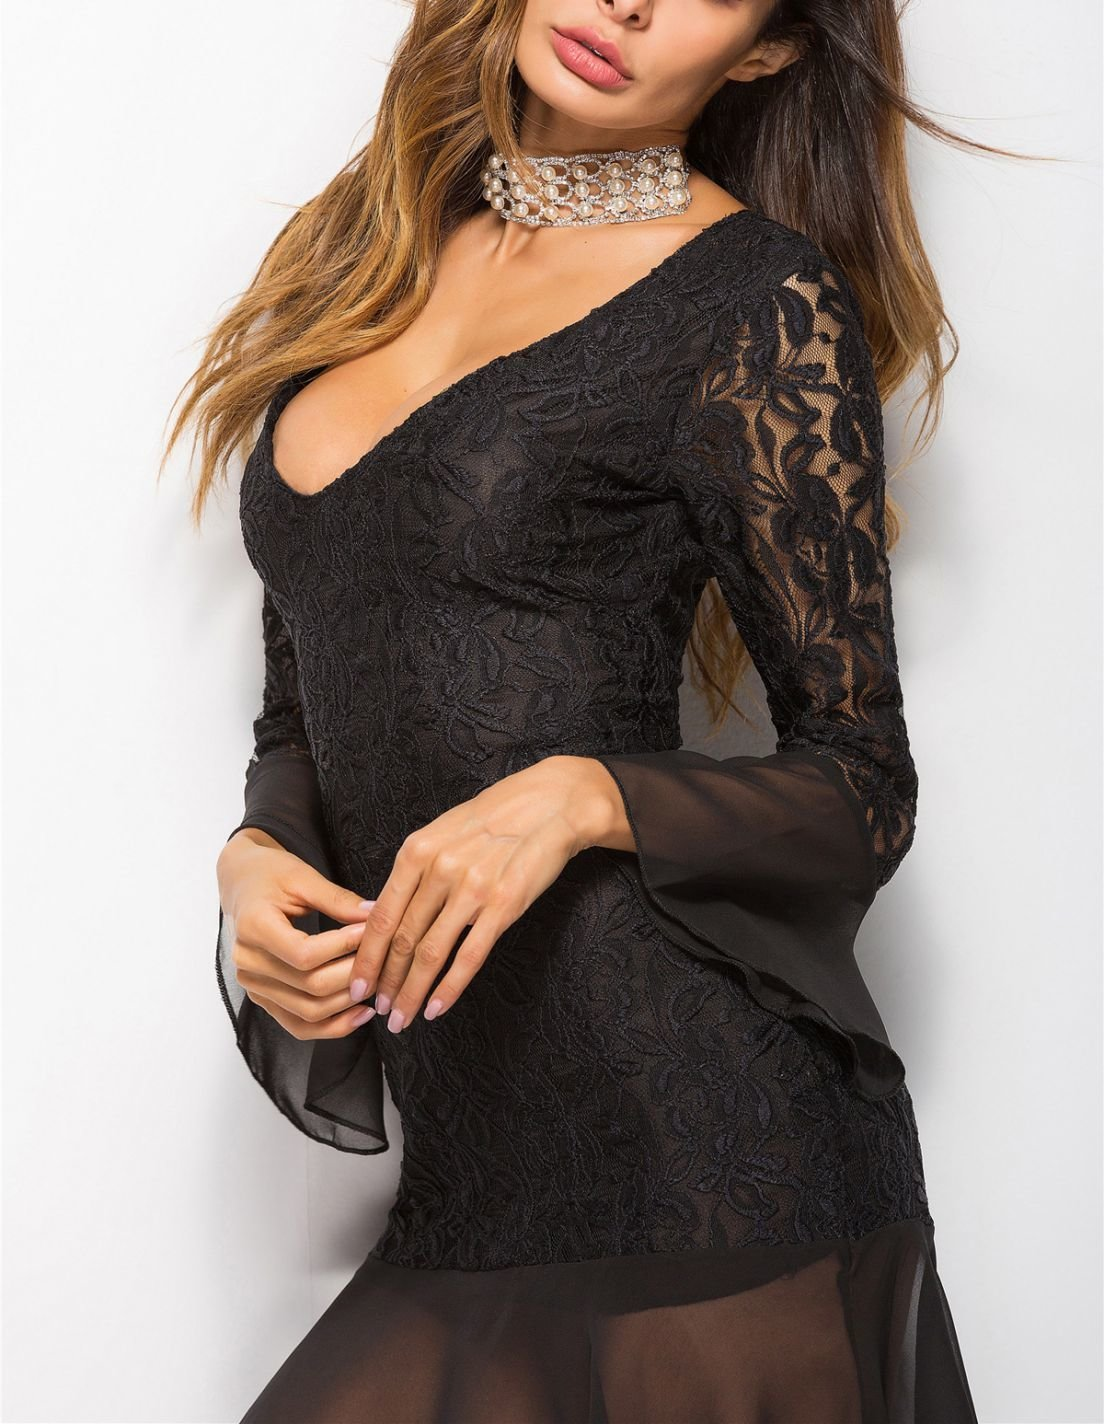 Lace and Sheer Cocktail Dress with Long Sleeves